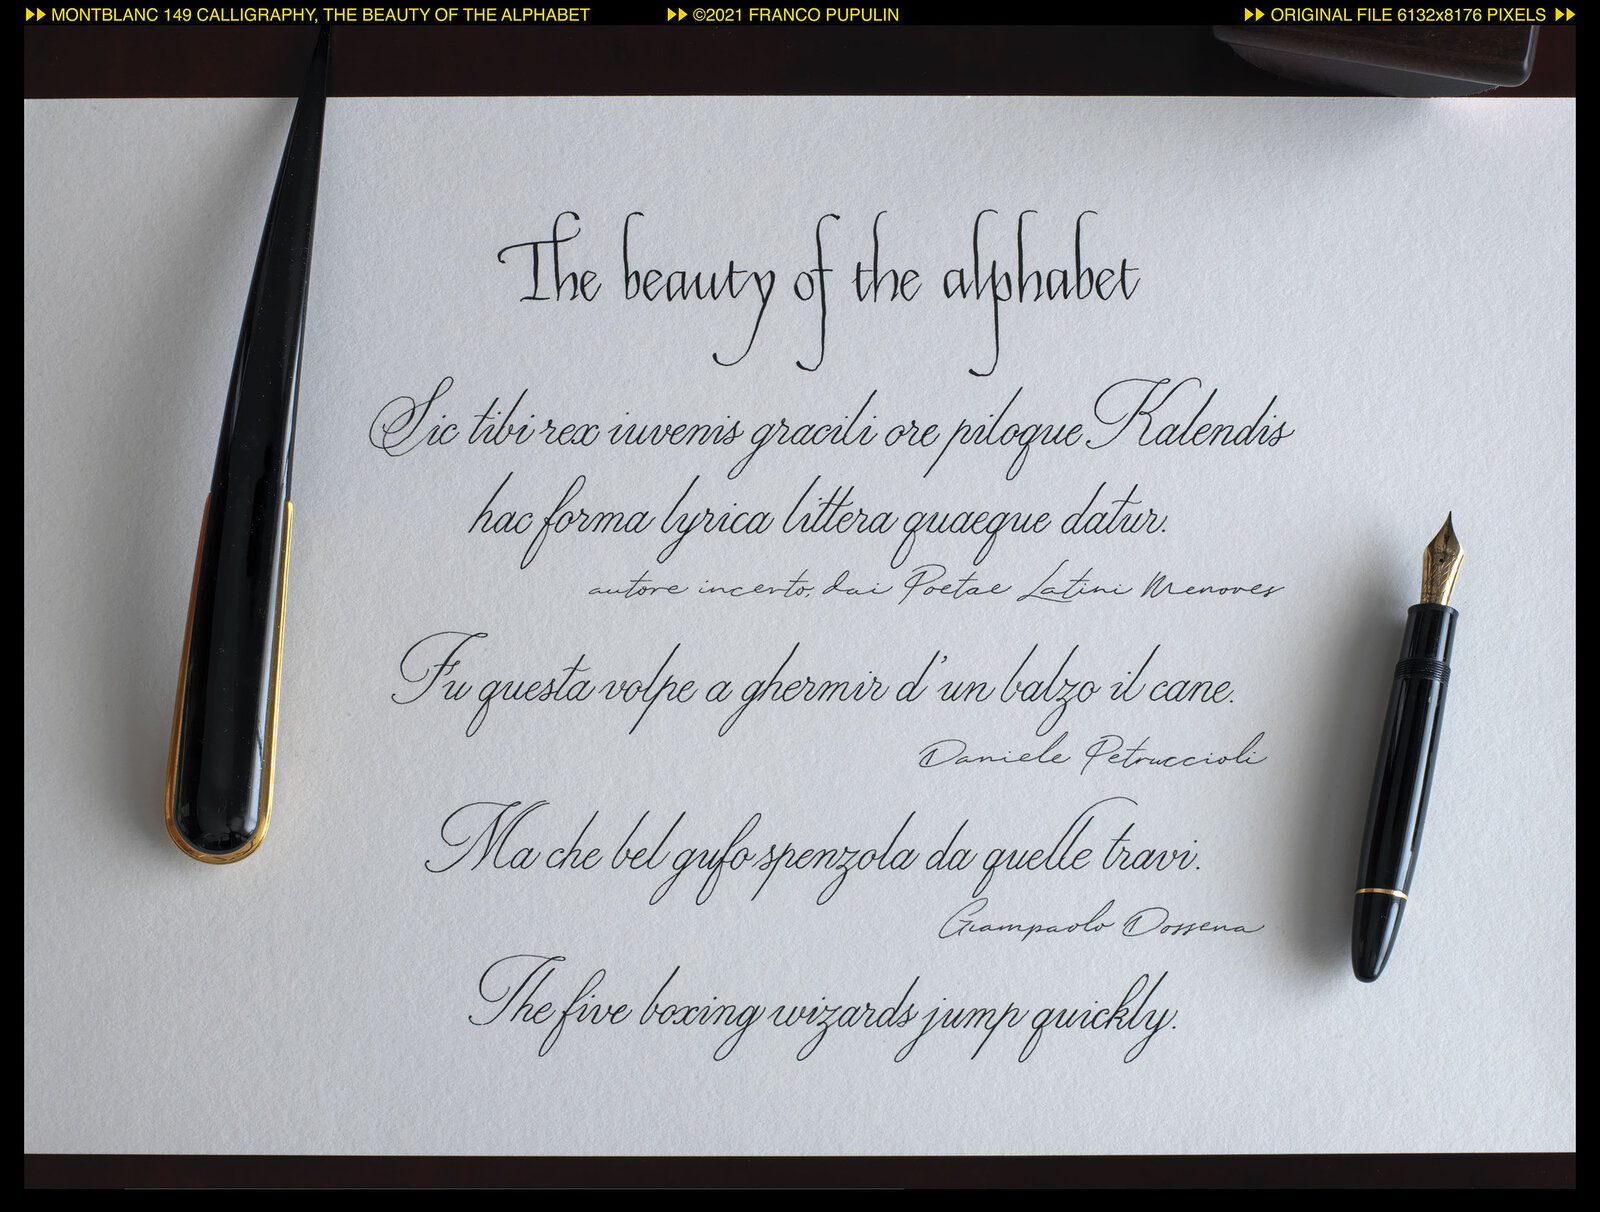 Montblanc 149 Calligraphy, The beauty of the alphabet (2) ©FP.jpg